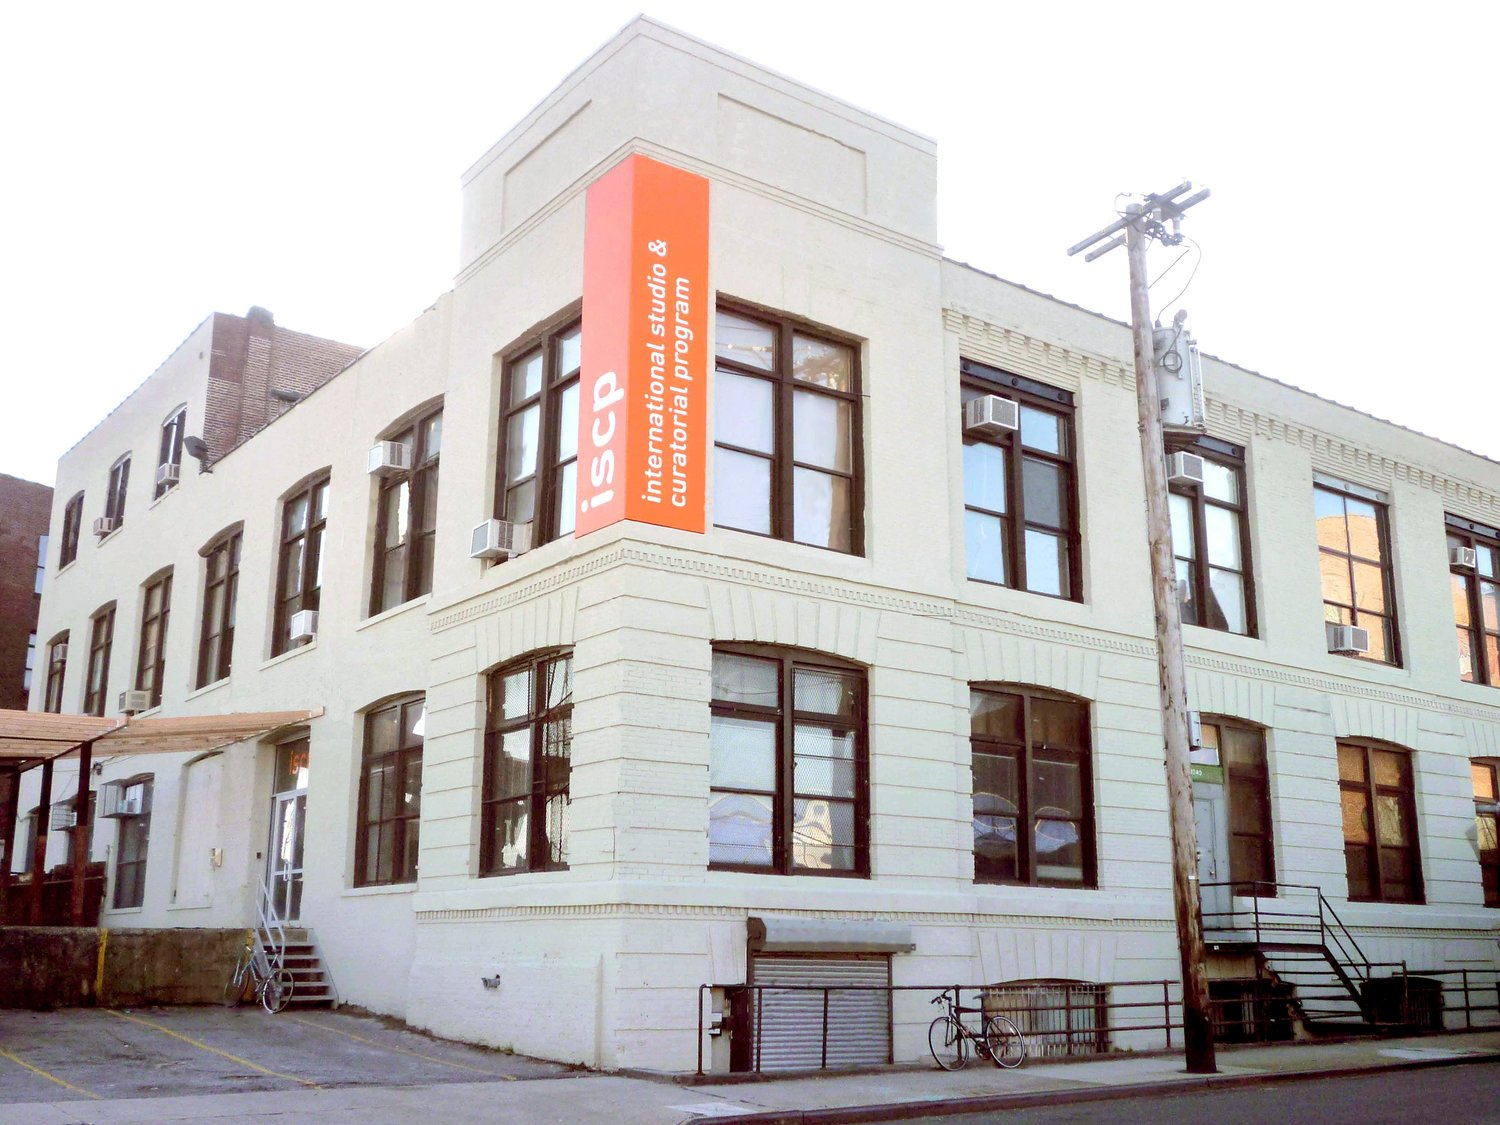 ISCP's building in East Williamsburg, Brooklyn. Courtesy ISCP.